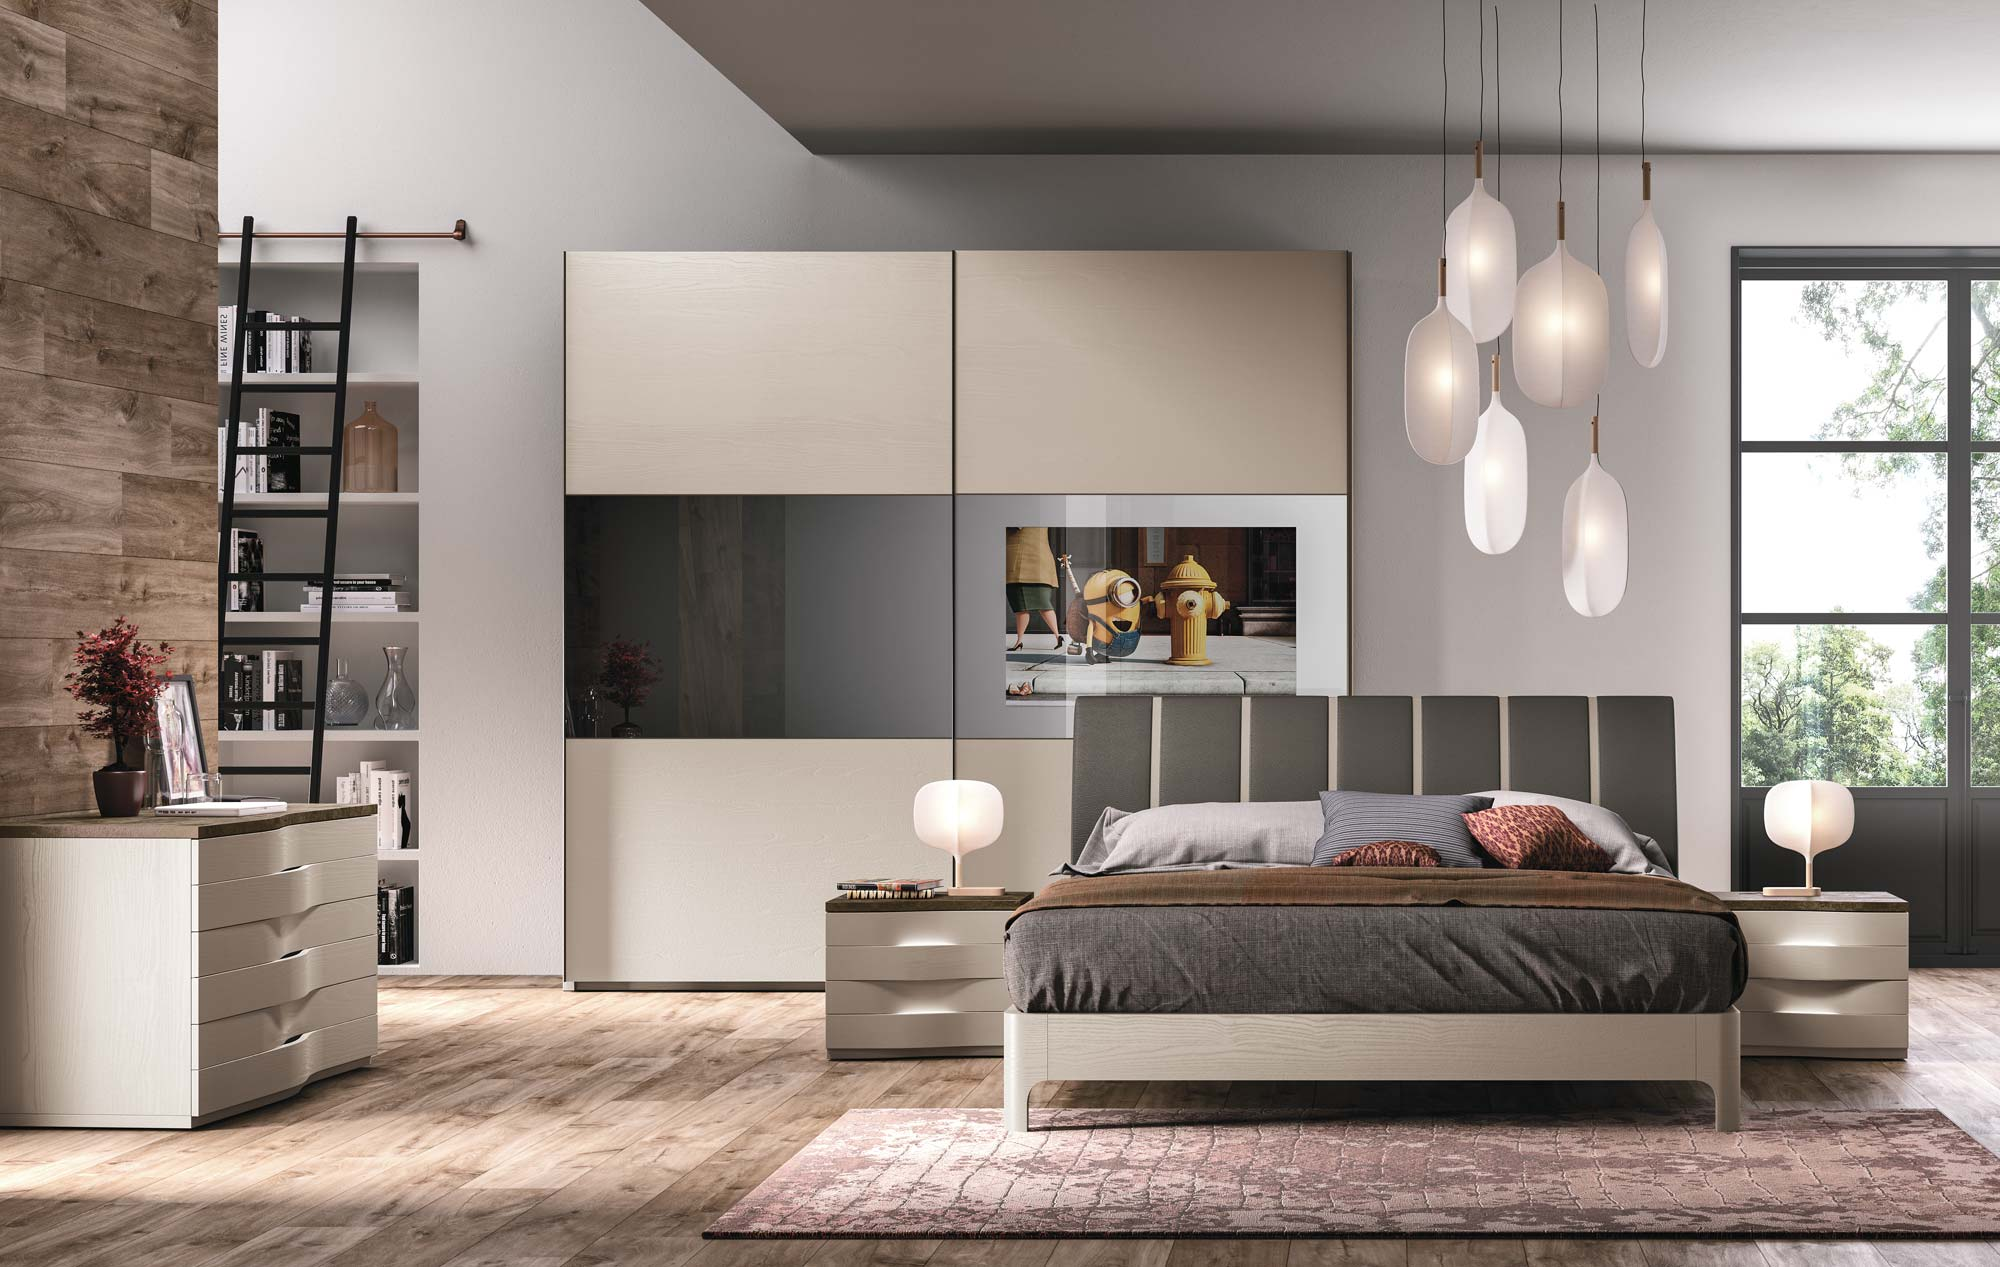 Home for Camere letto 2018